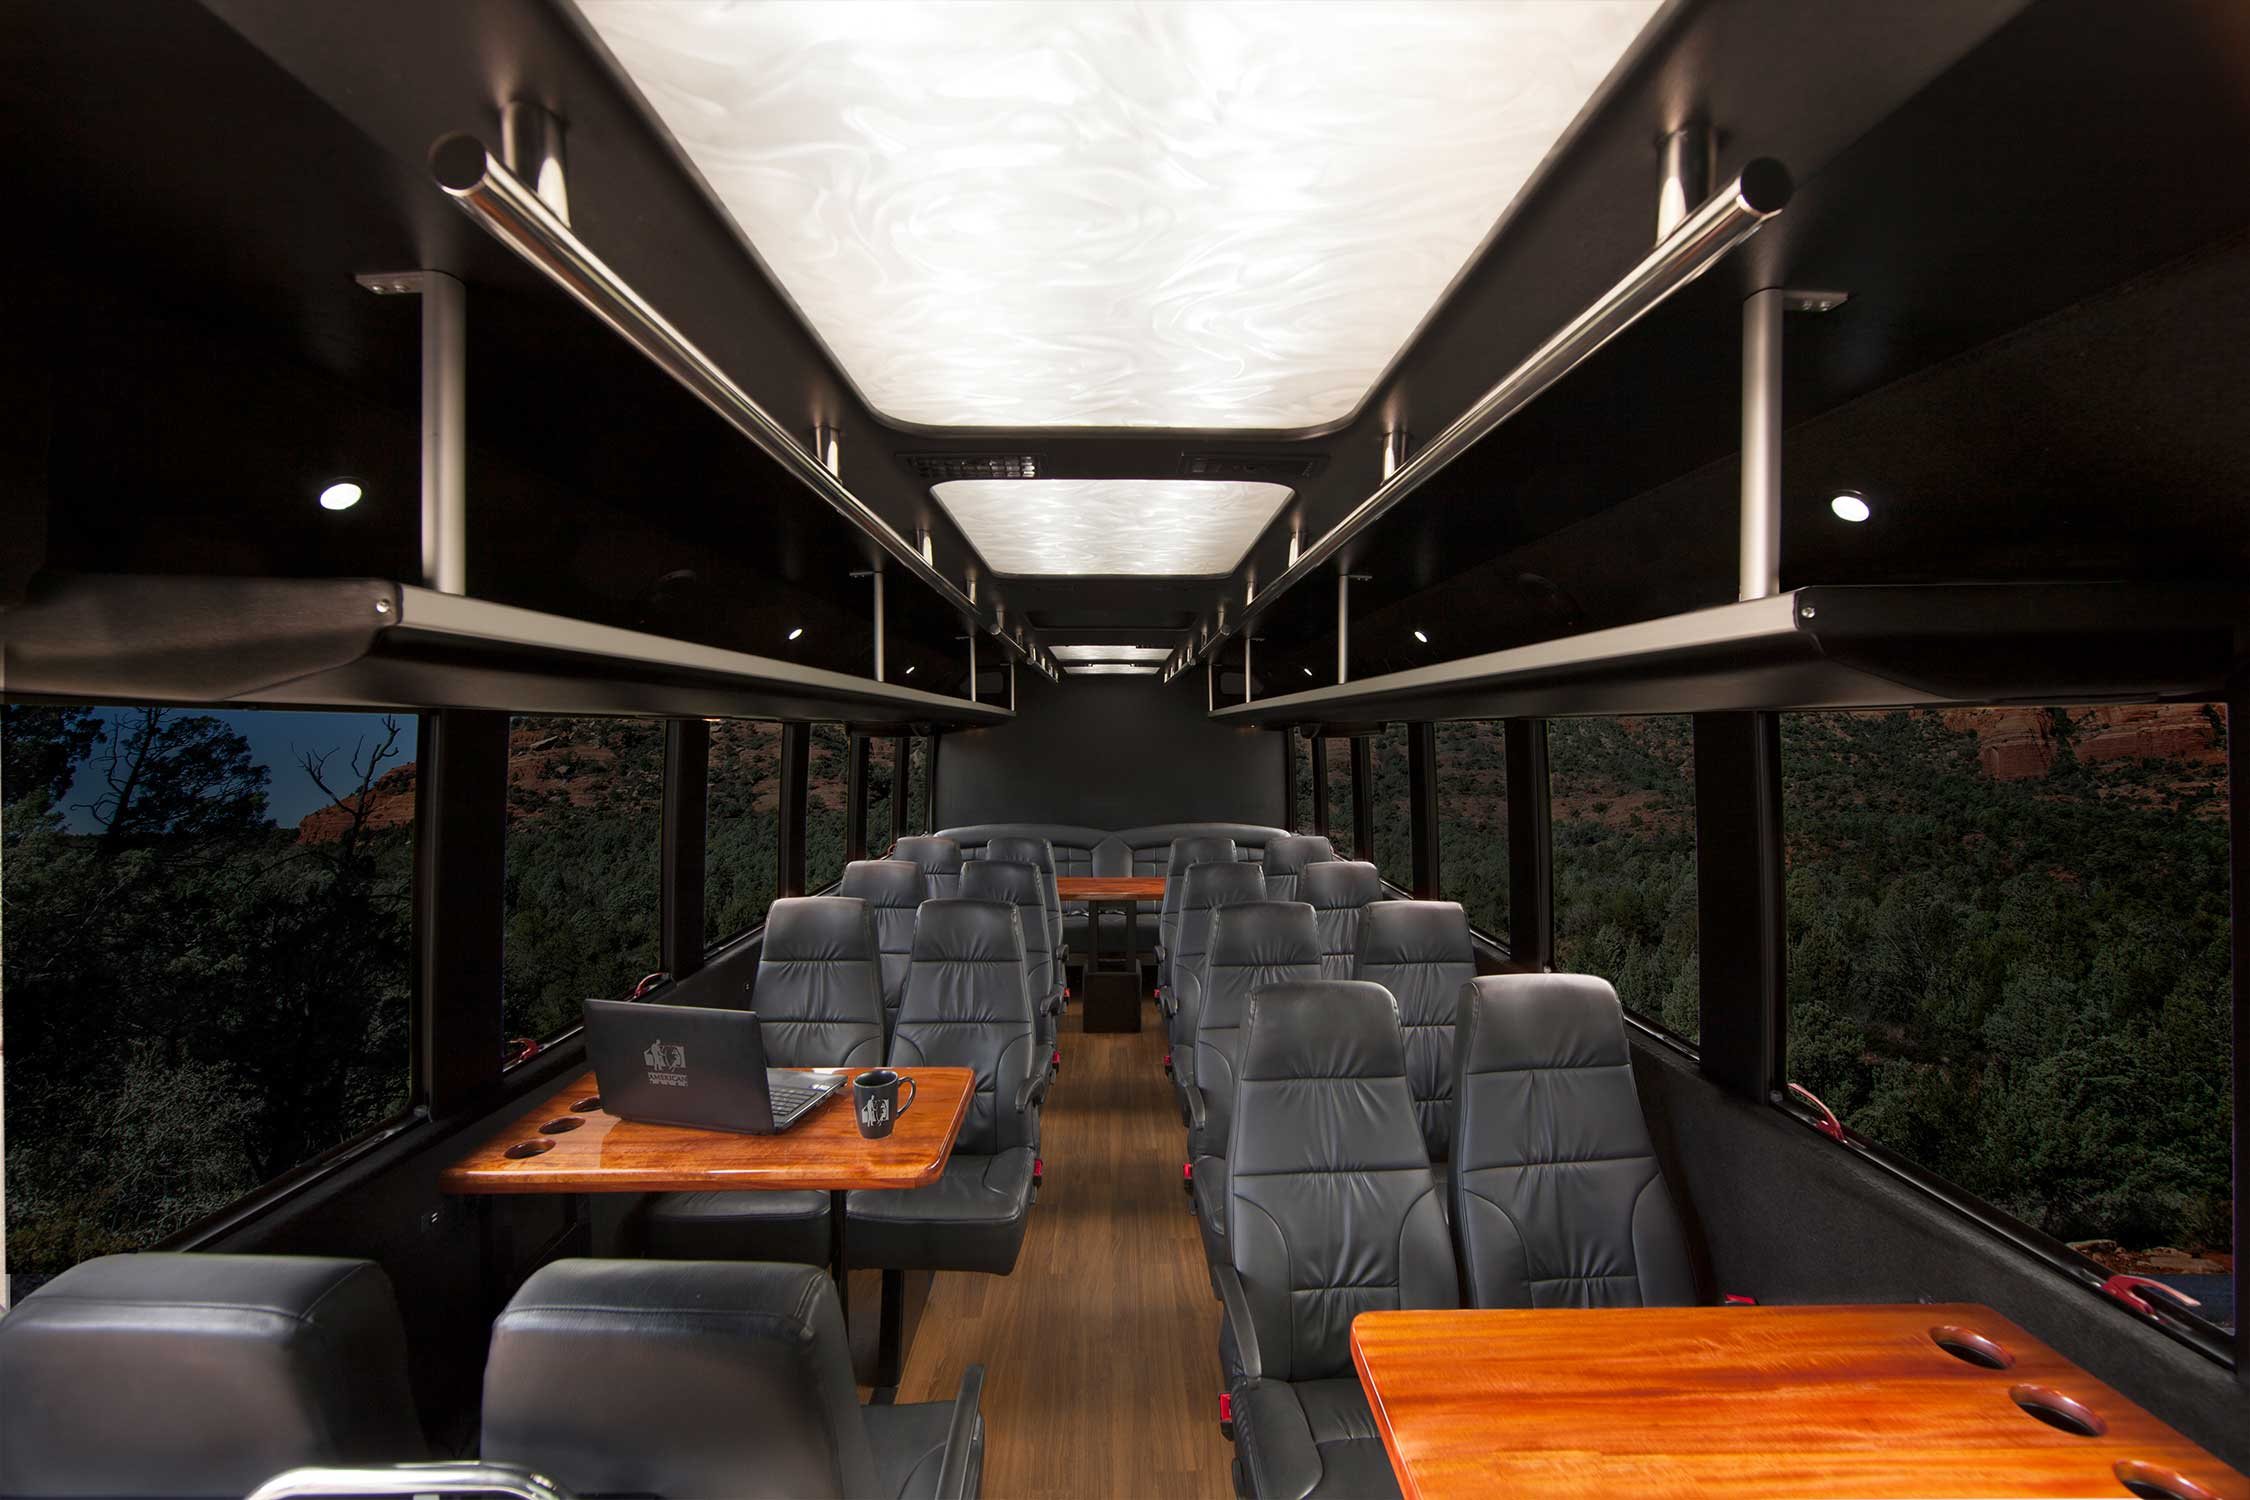 Shuttle Services Luxury Bus Preview